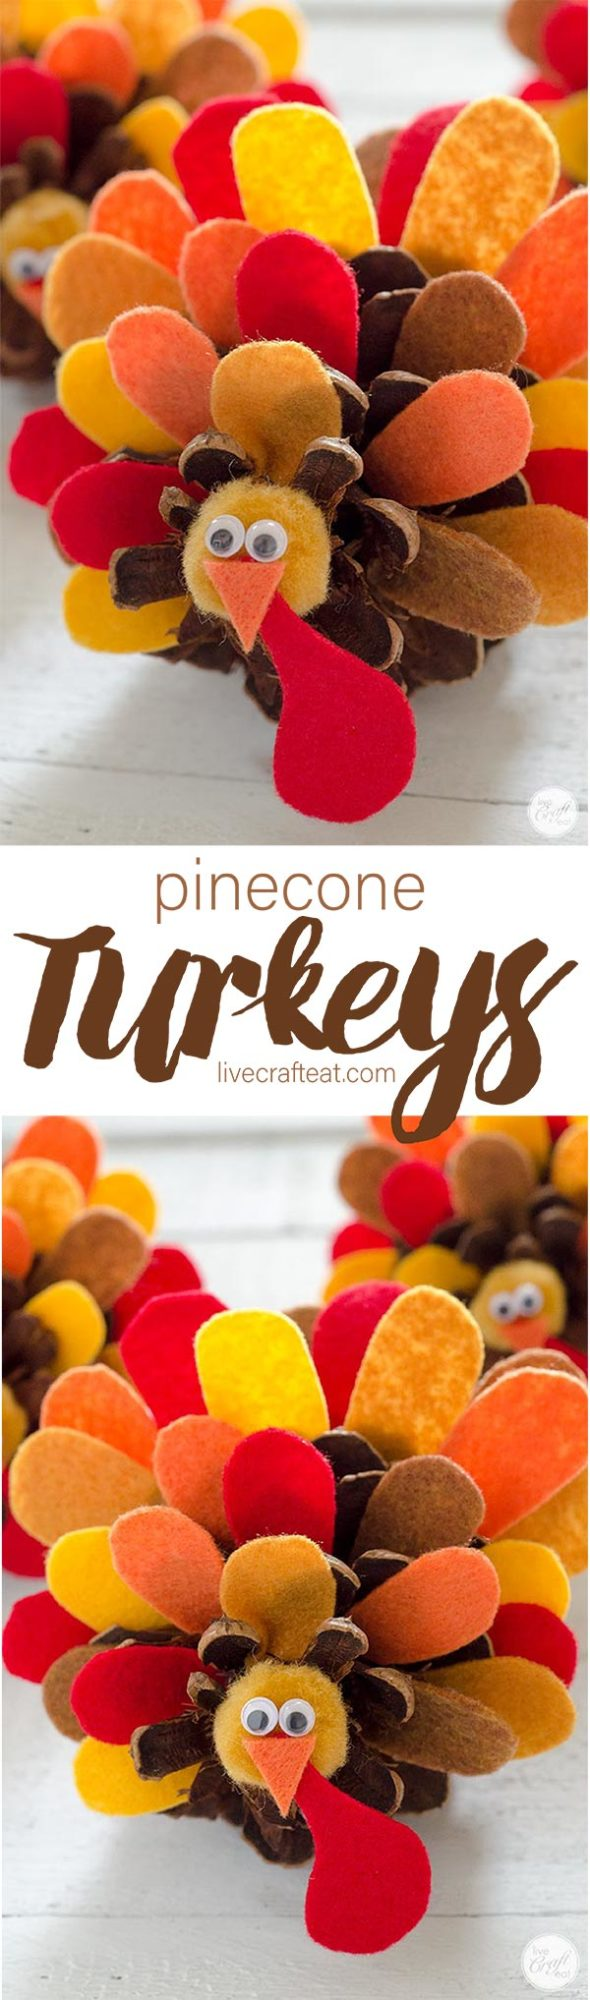 thanksgiving pinecone turkeys :: perfect for decorating or using as place cards at your thanksgiving table!